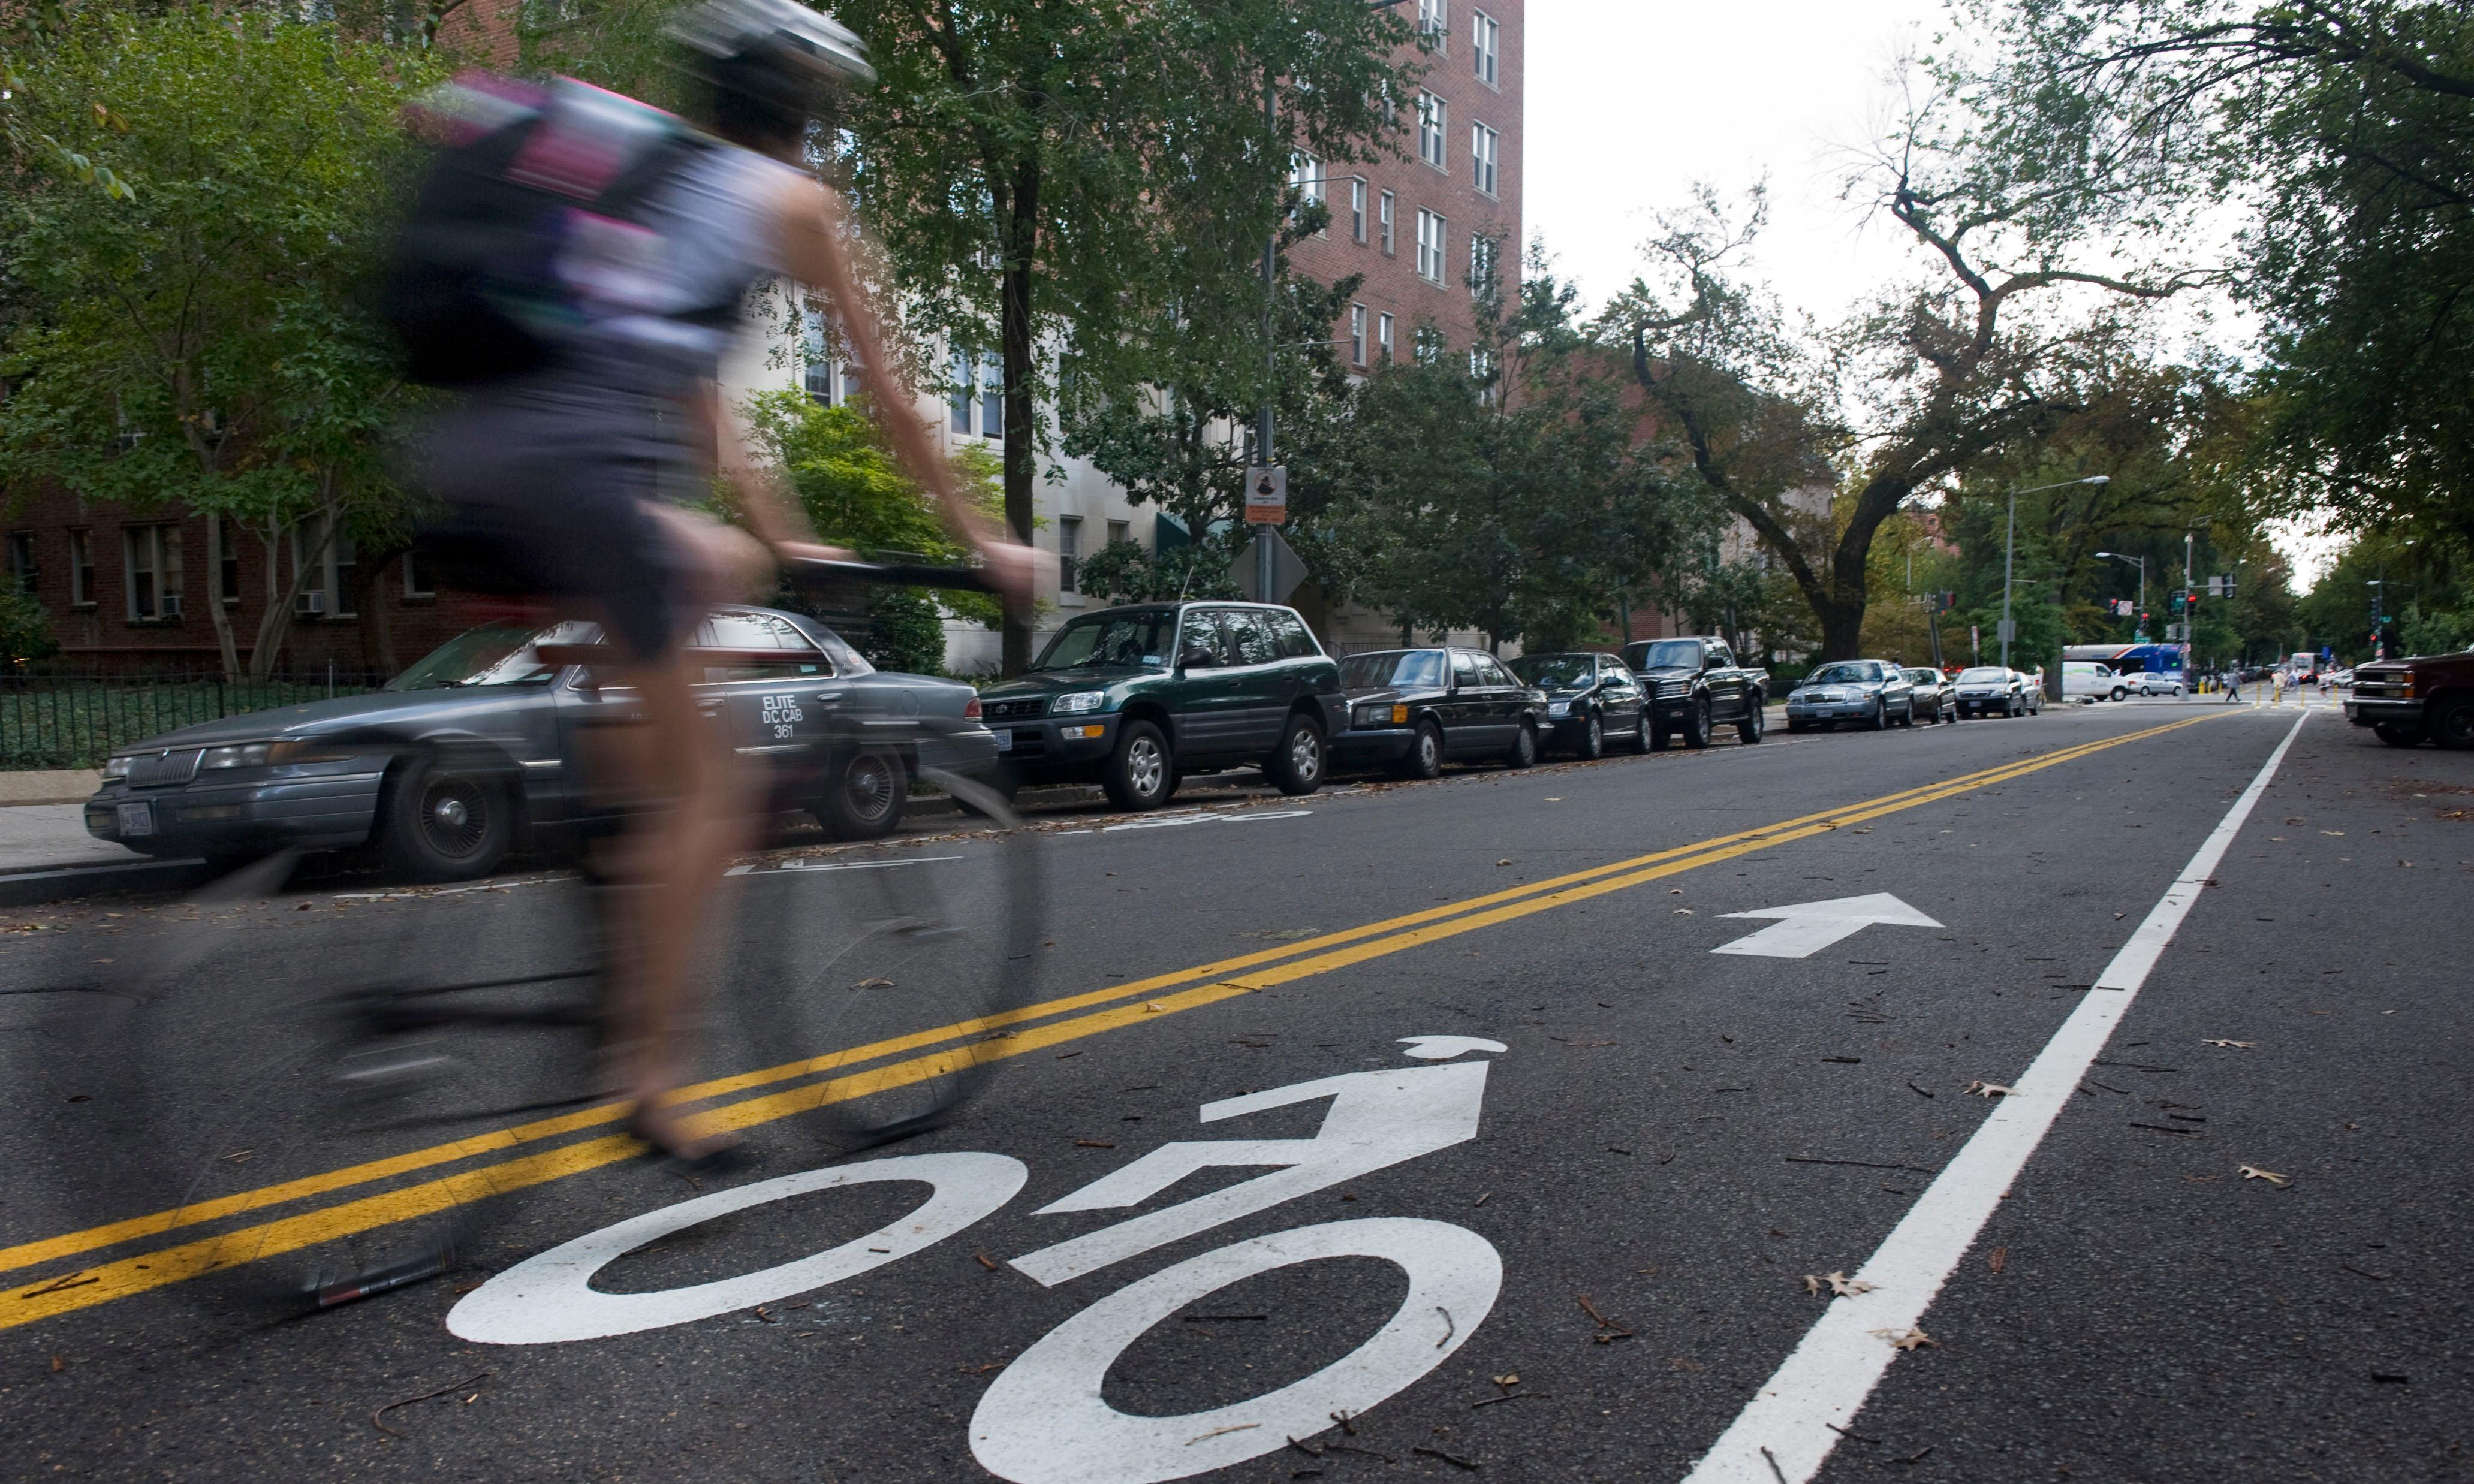 Making cycling safer and more appealing